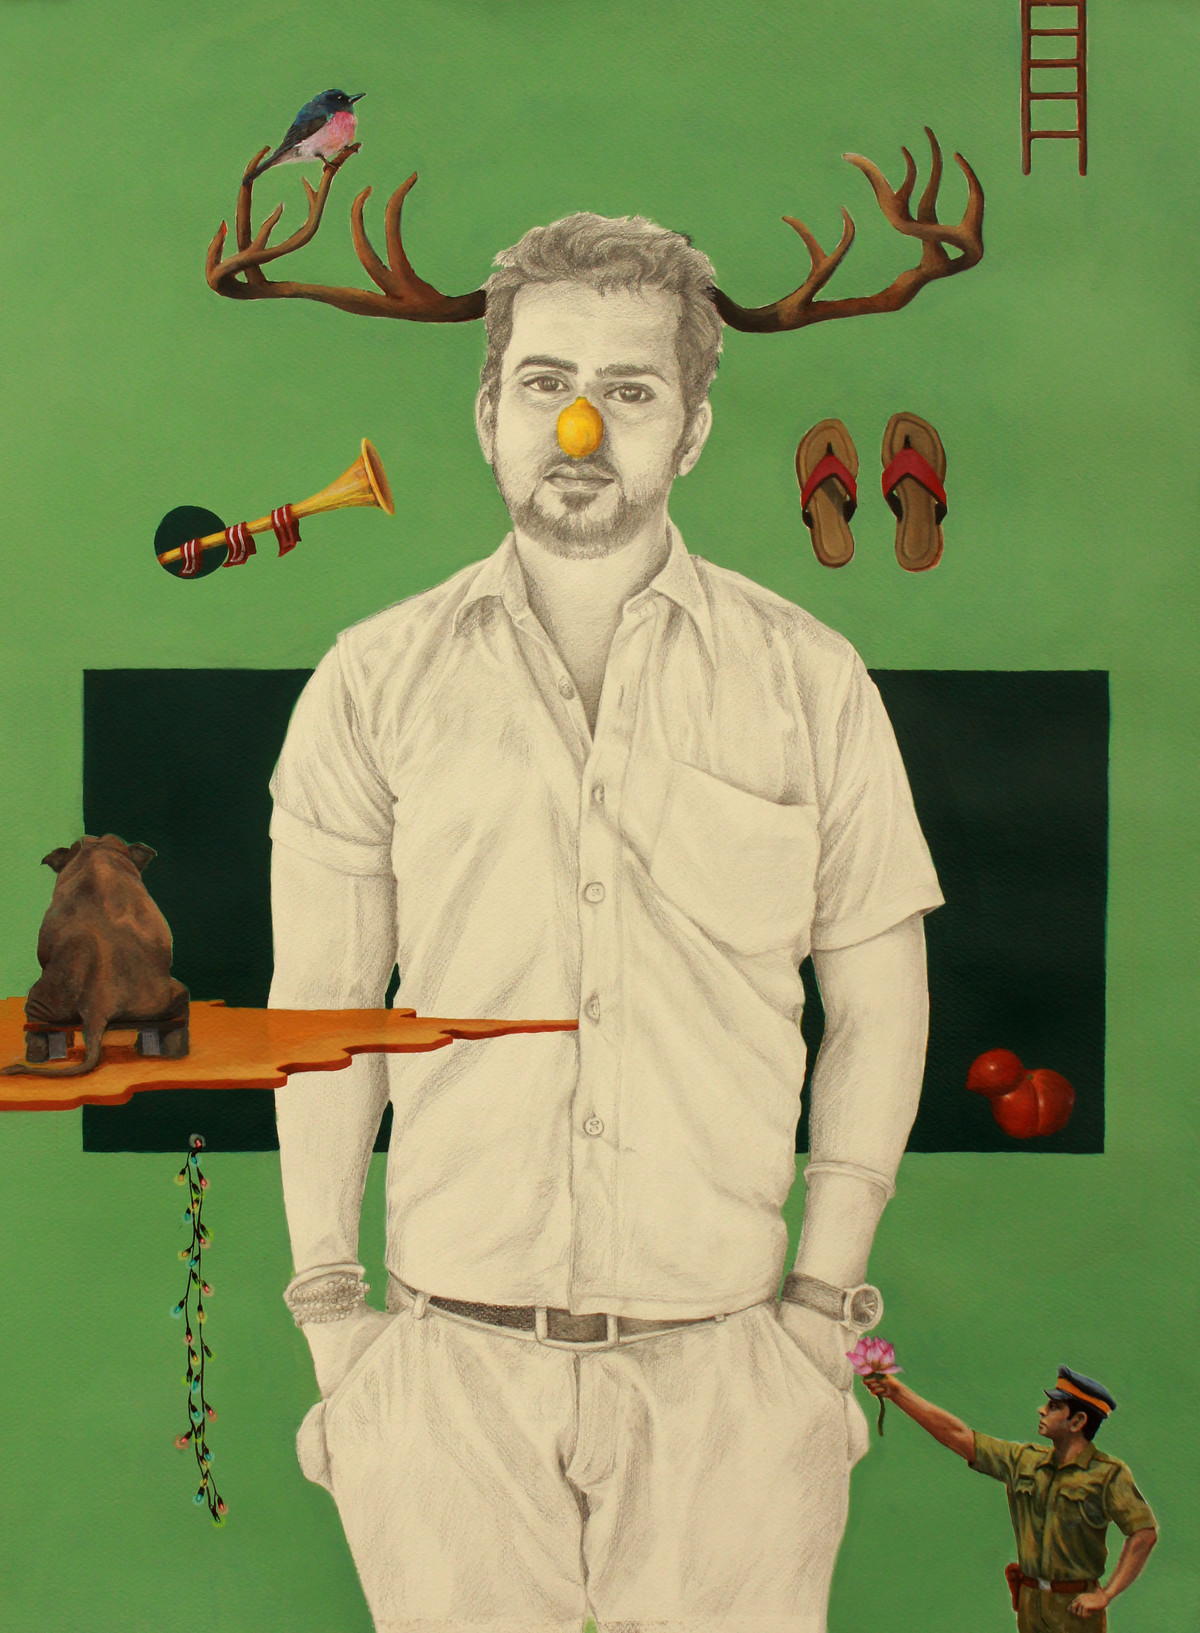 HE FOOLED ME by Ankur, Fantasy Painting, Mixed Media on Paper, Green color